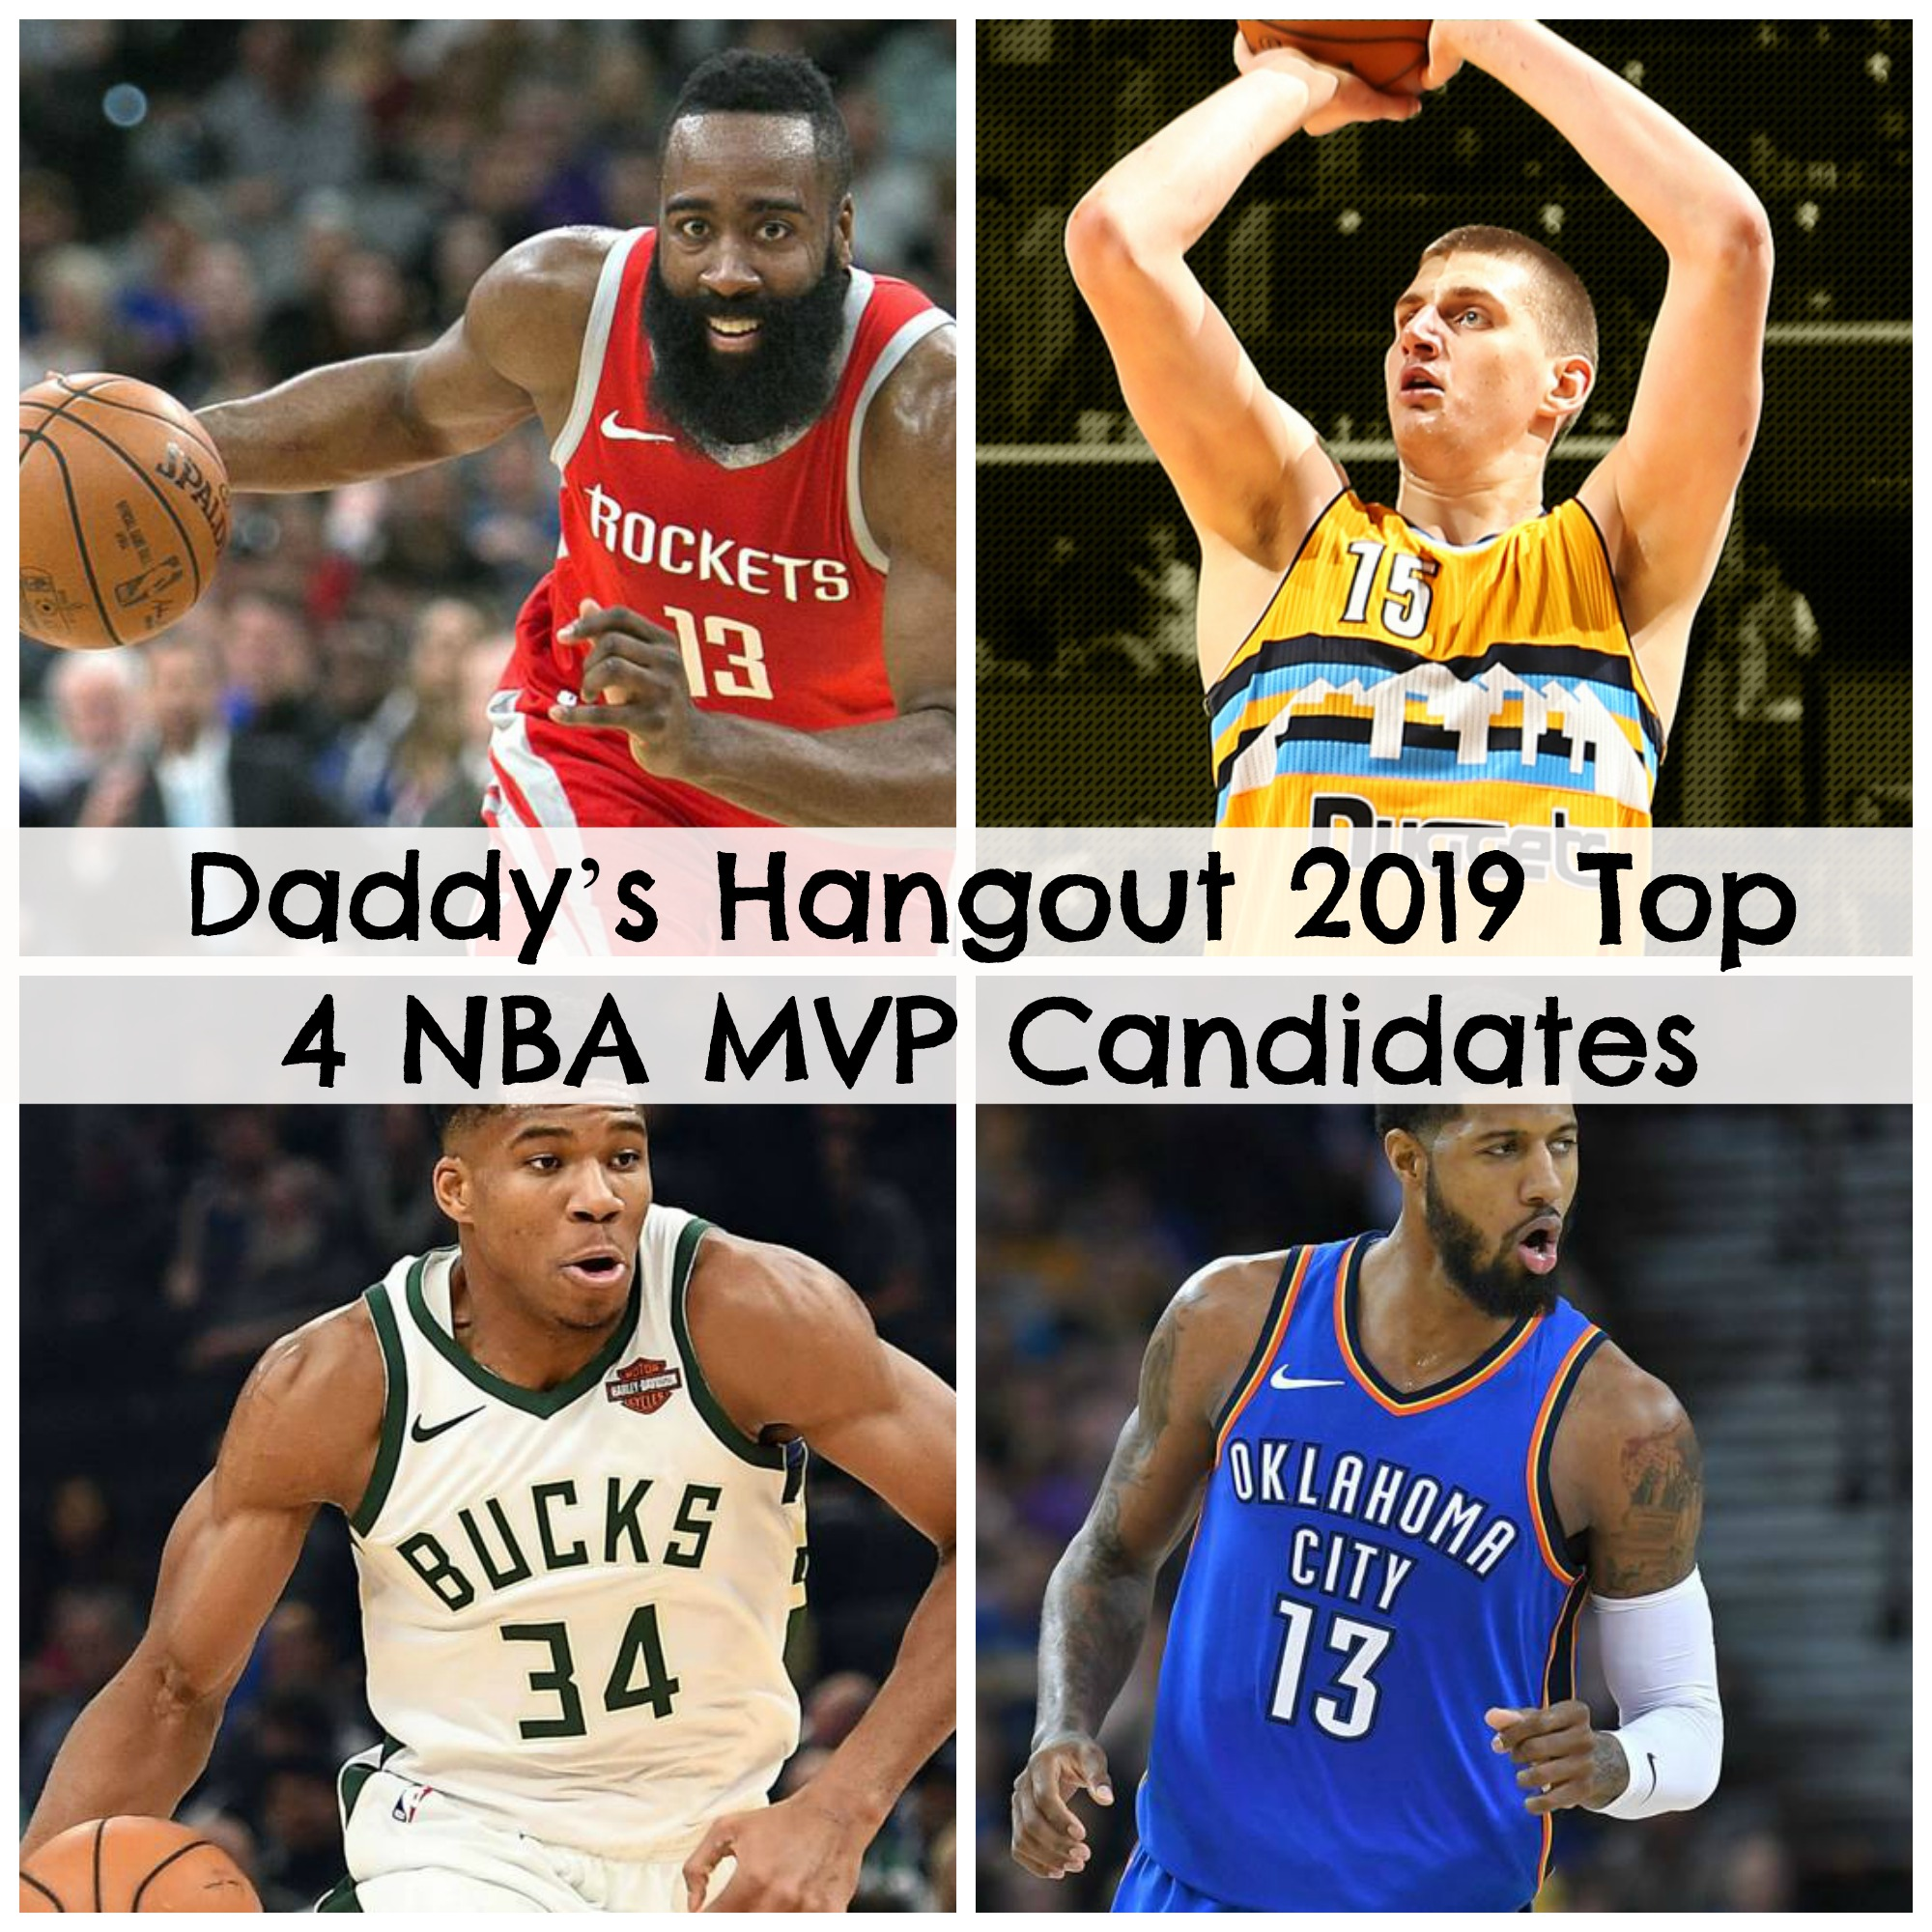 Daddy's Hangout 2019 Top 4 NBA MVP Candidates